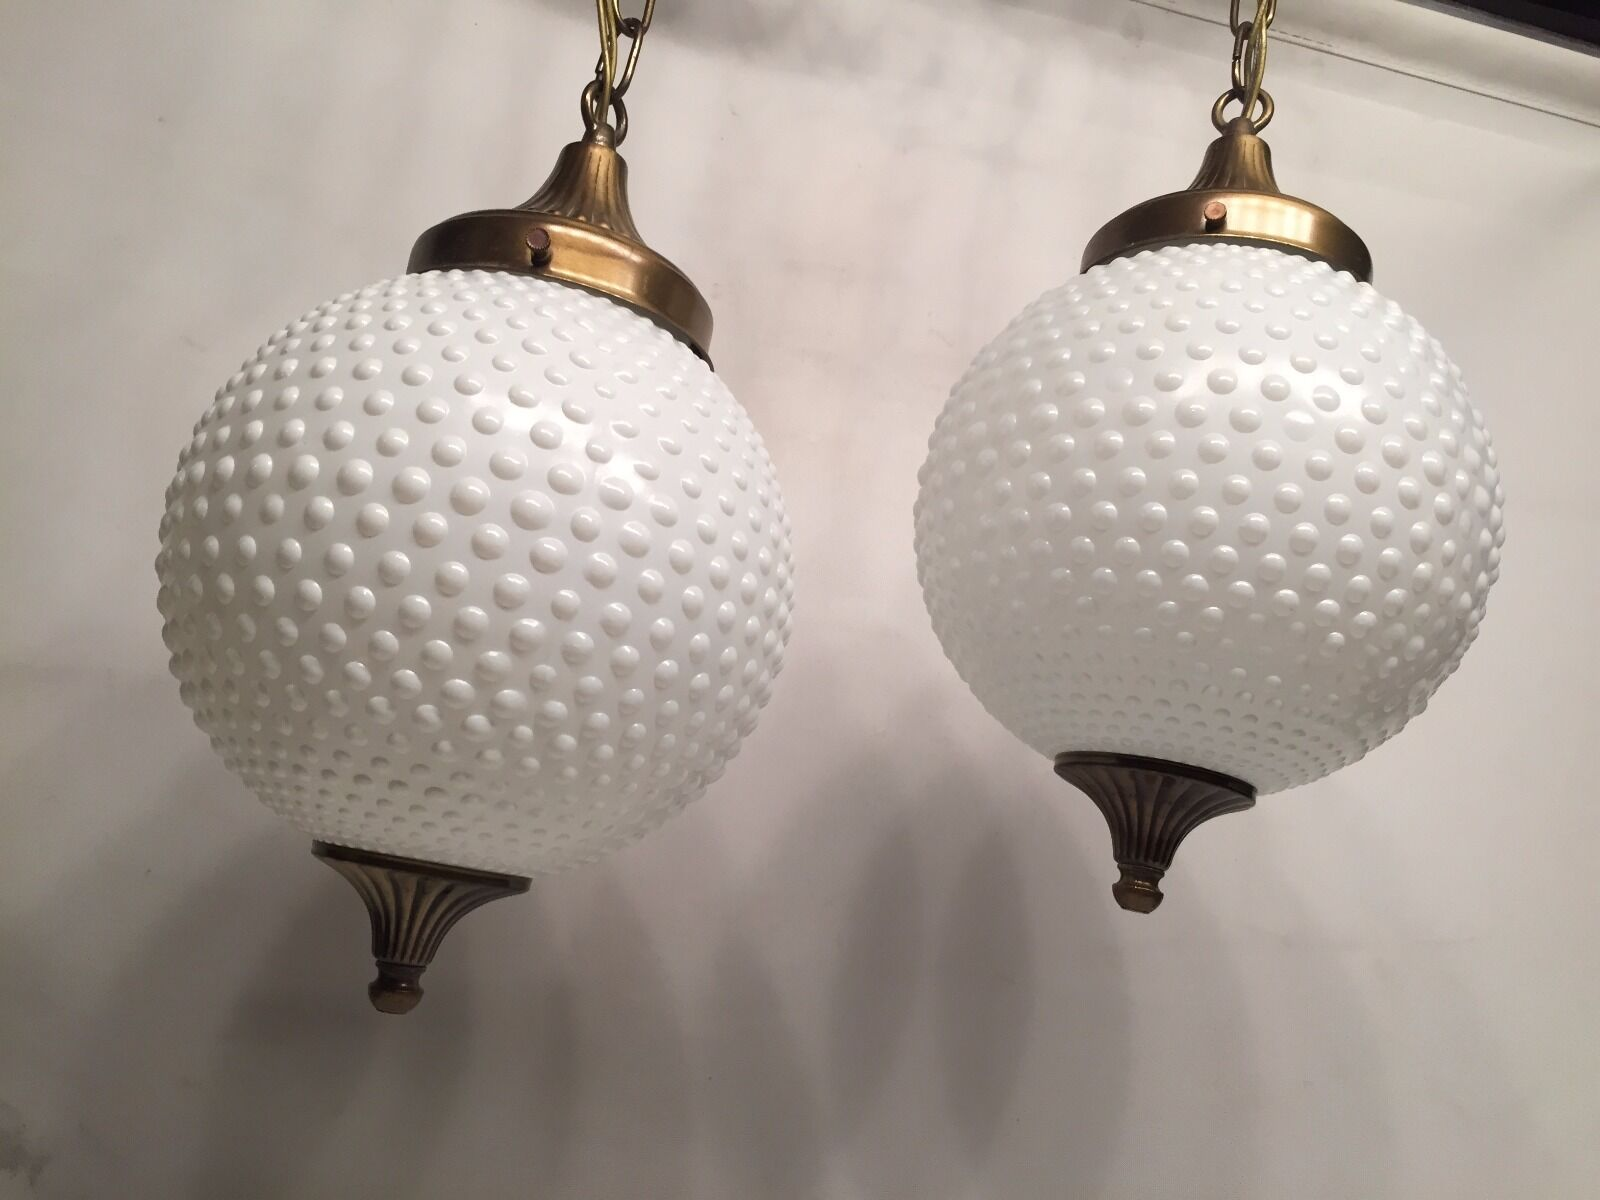 Pair of Vintage Pendant Lamps by Thomas Industries